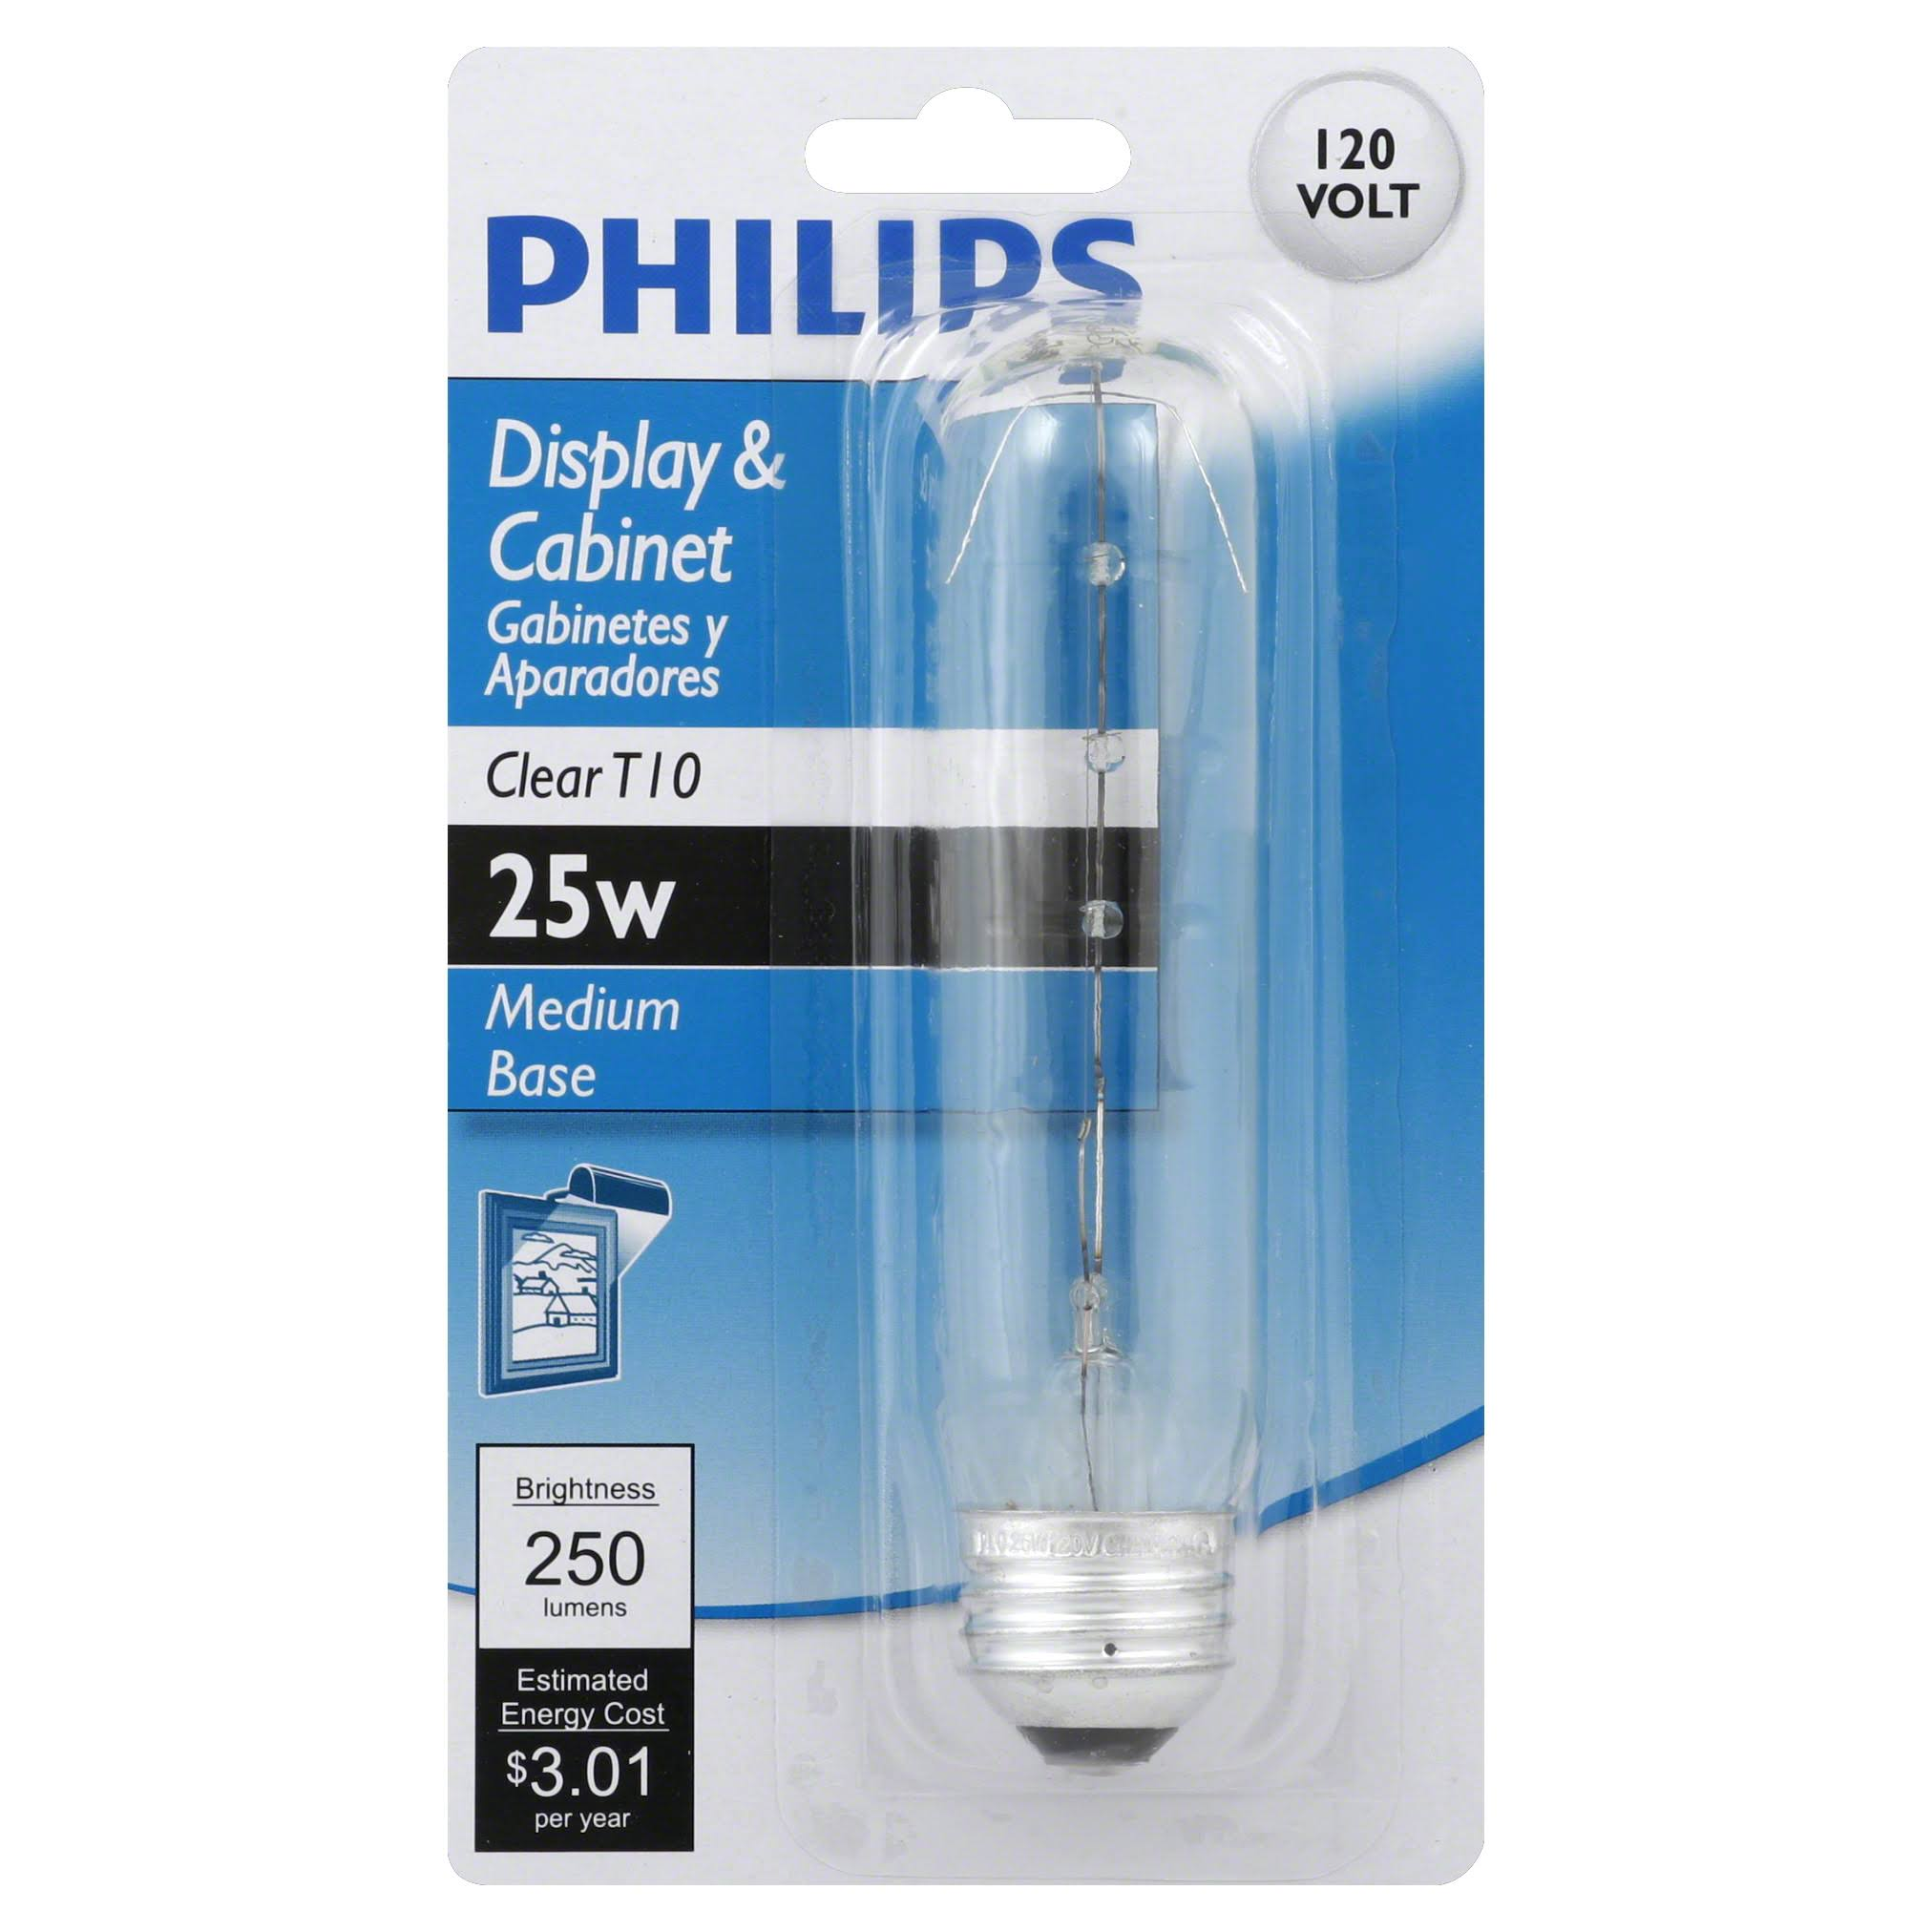 Philips Display and Cabinet T10 Light Bulb - 25W, Clear